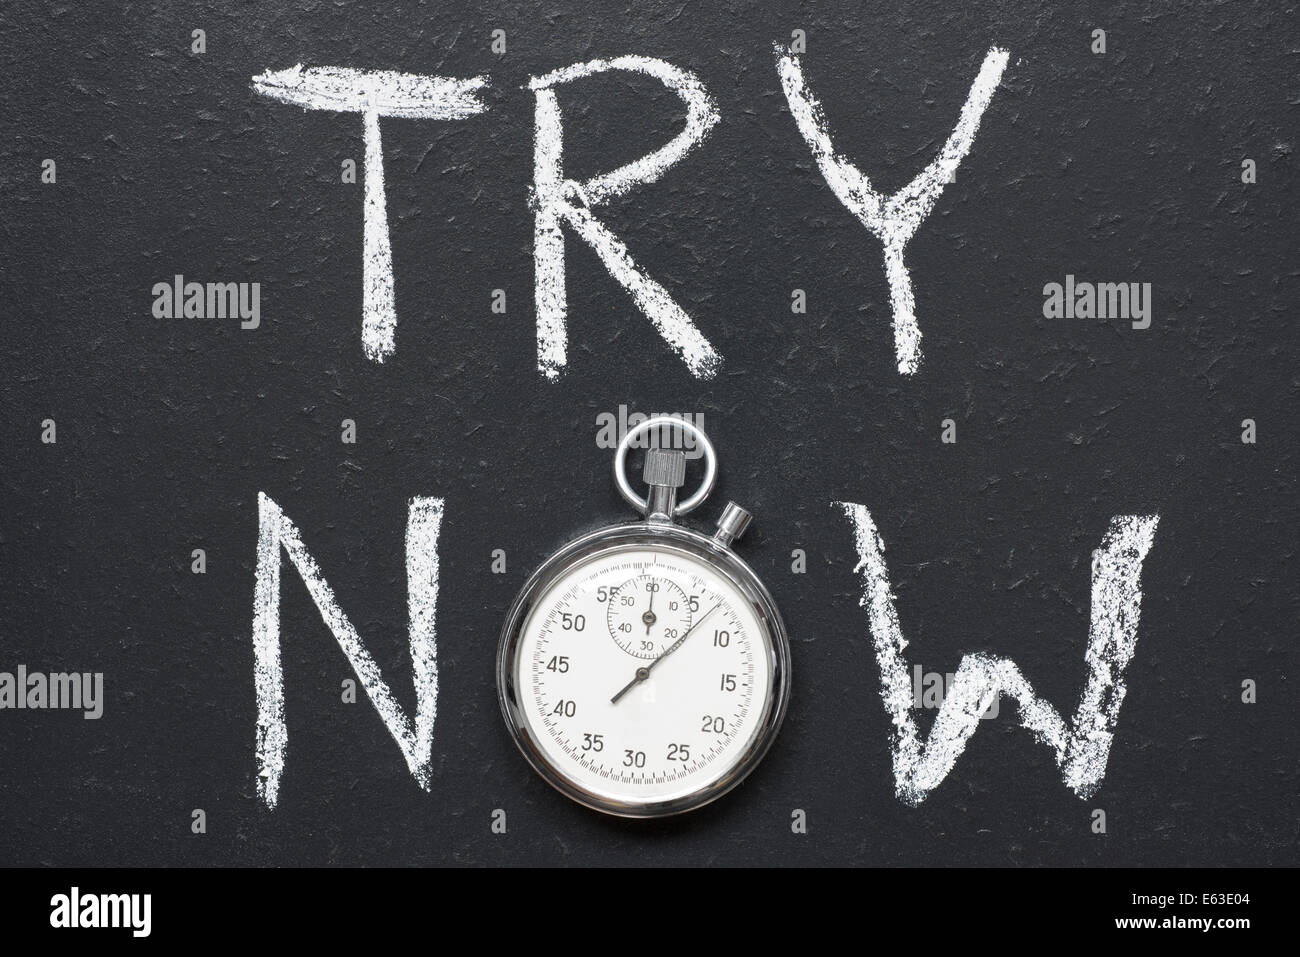 try now concept handwritten on chalkboard with vintage precise stopwatch used instead of O - Stock Image